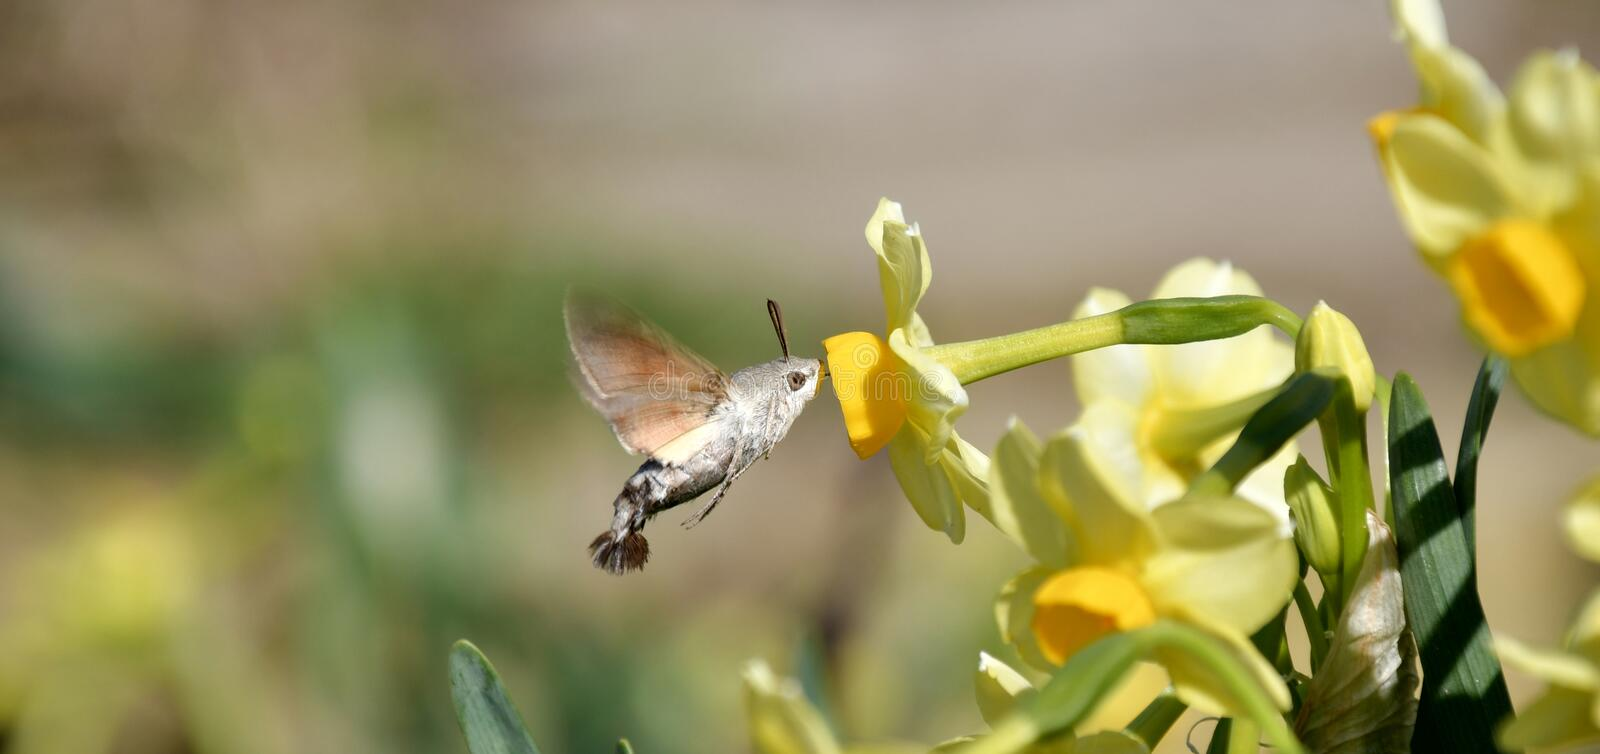 Close up of a hummingbird moth feeding on a blooming flower head stock photo